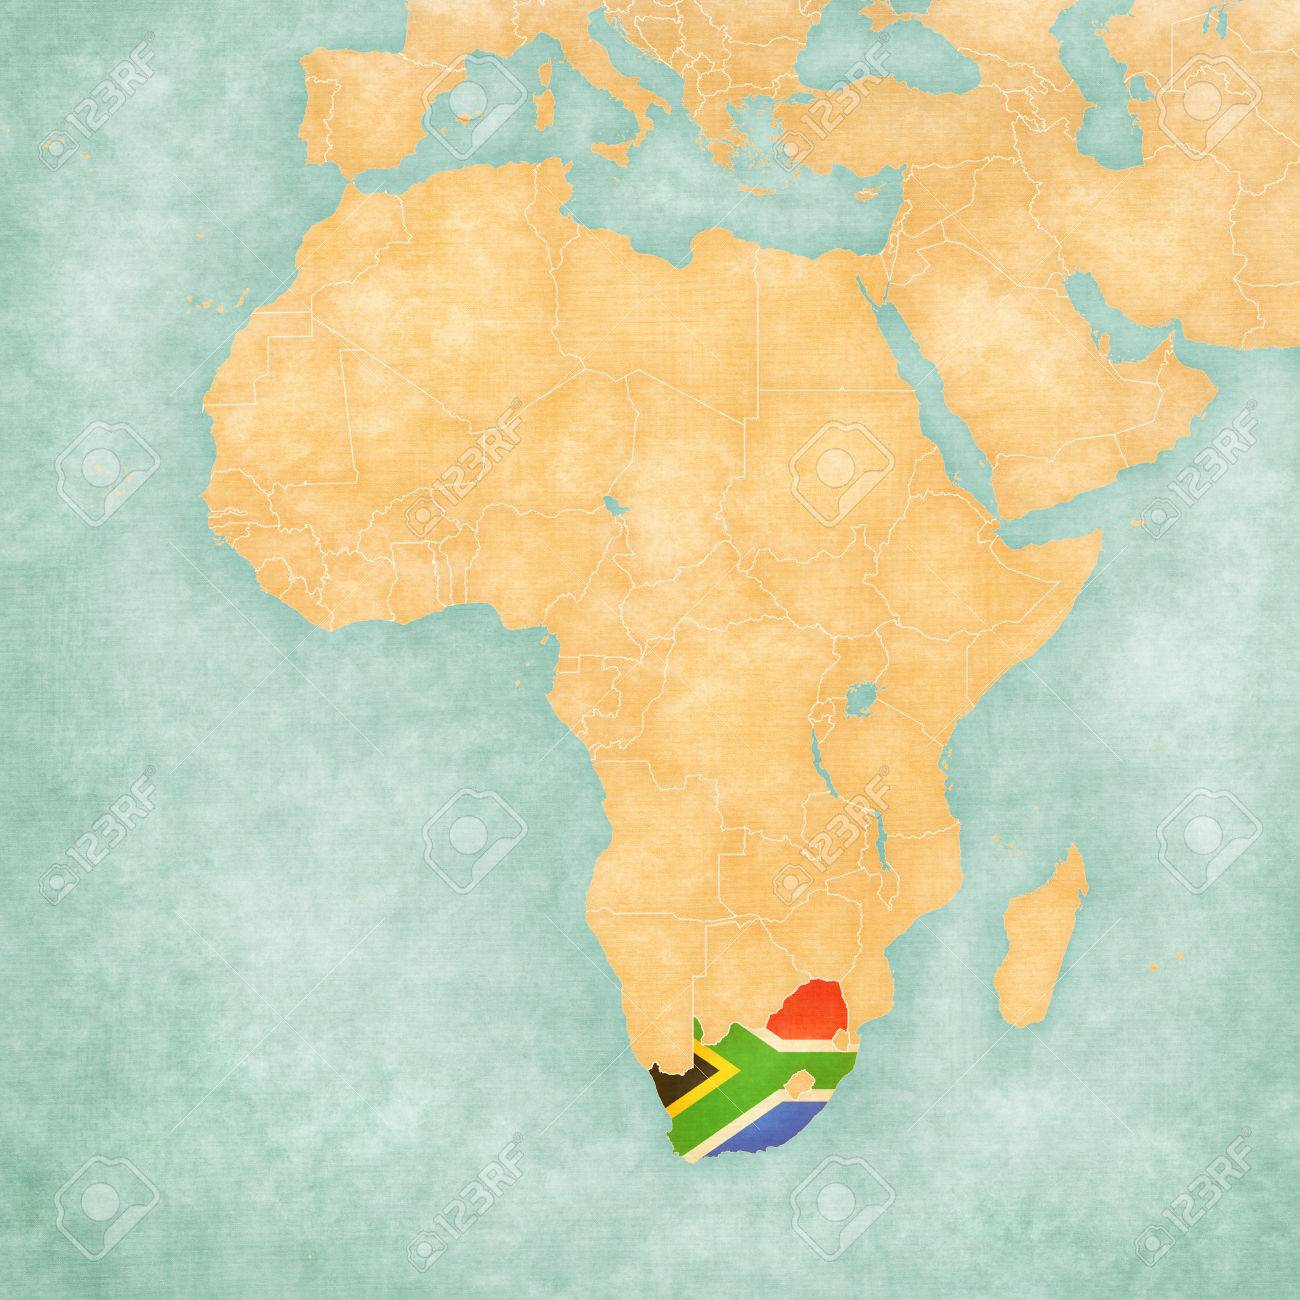 South Africa (South African flag) on the map of Africa. The map..